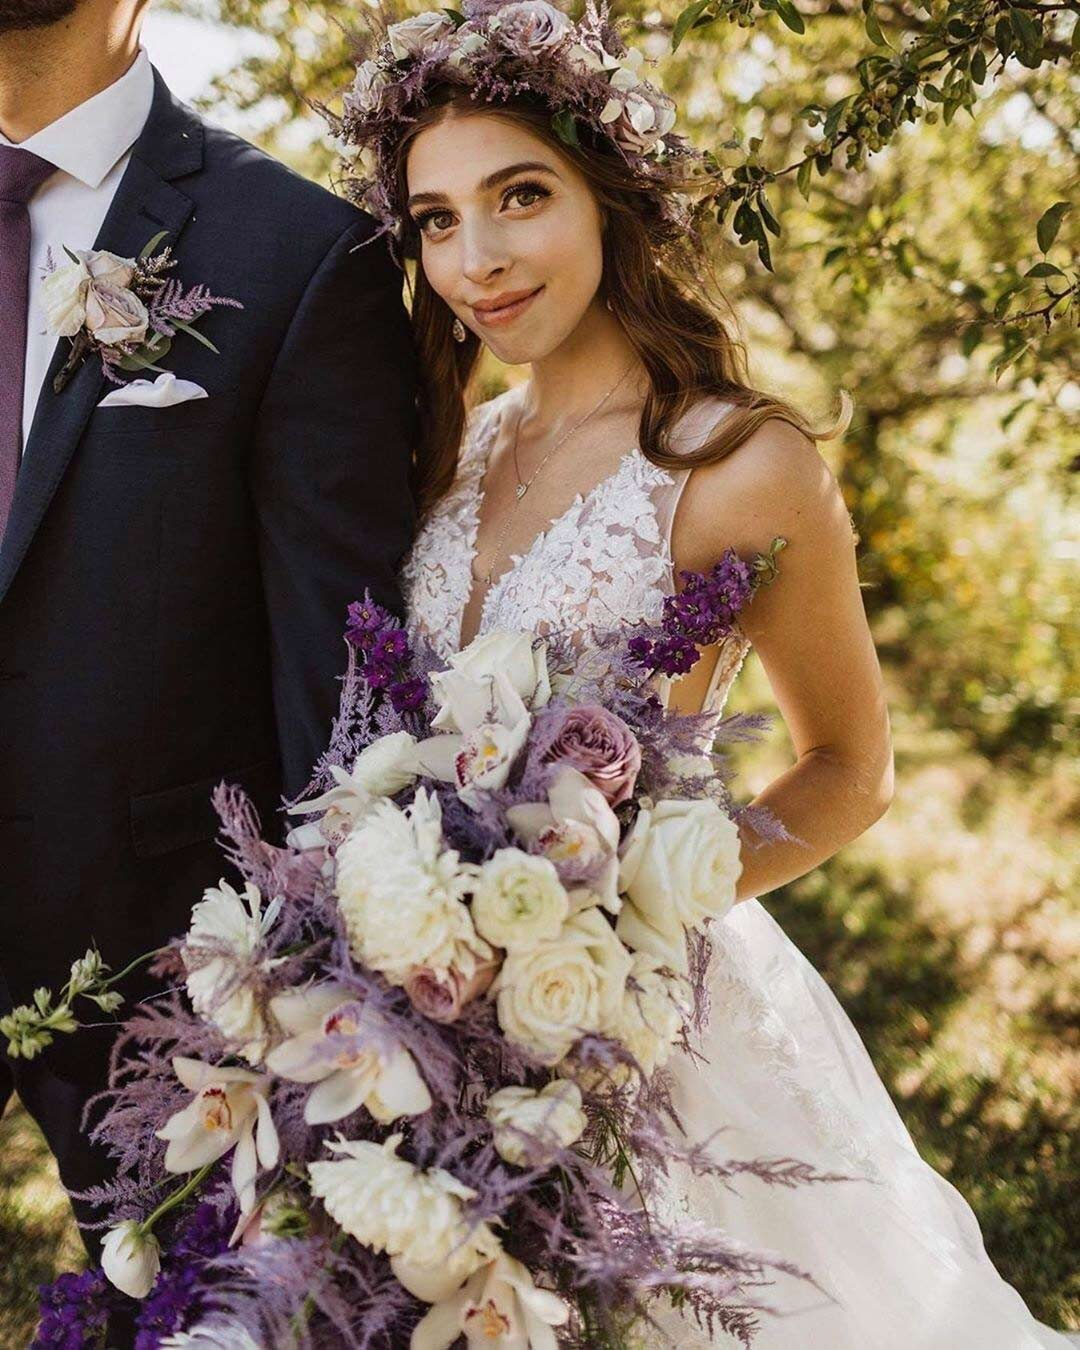 lilac wedding colors bouquet bride crown